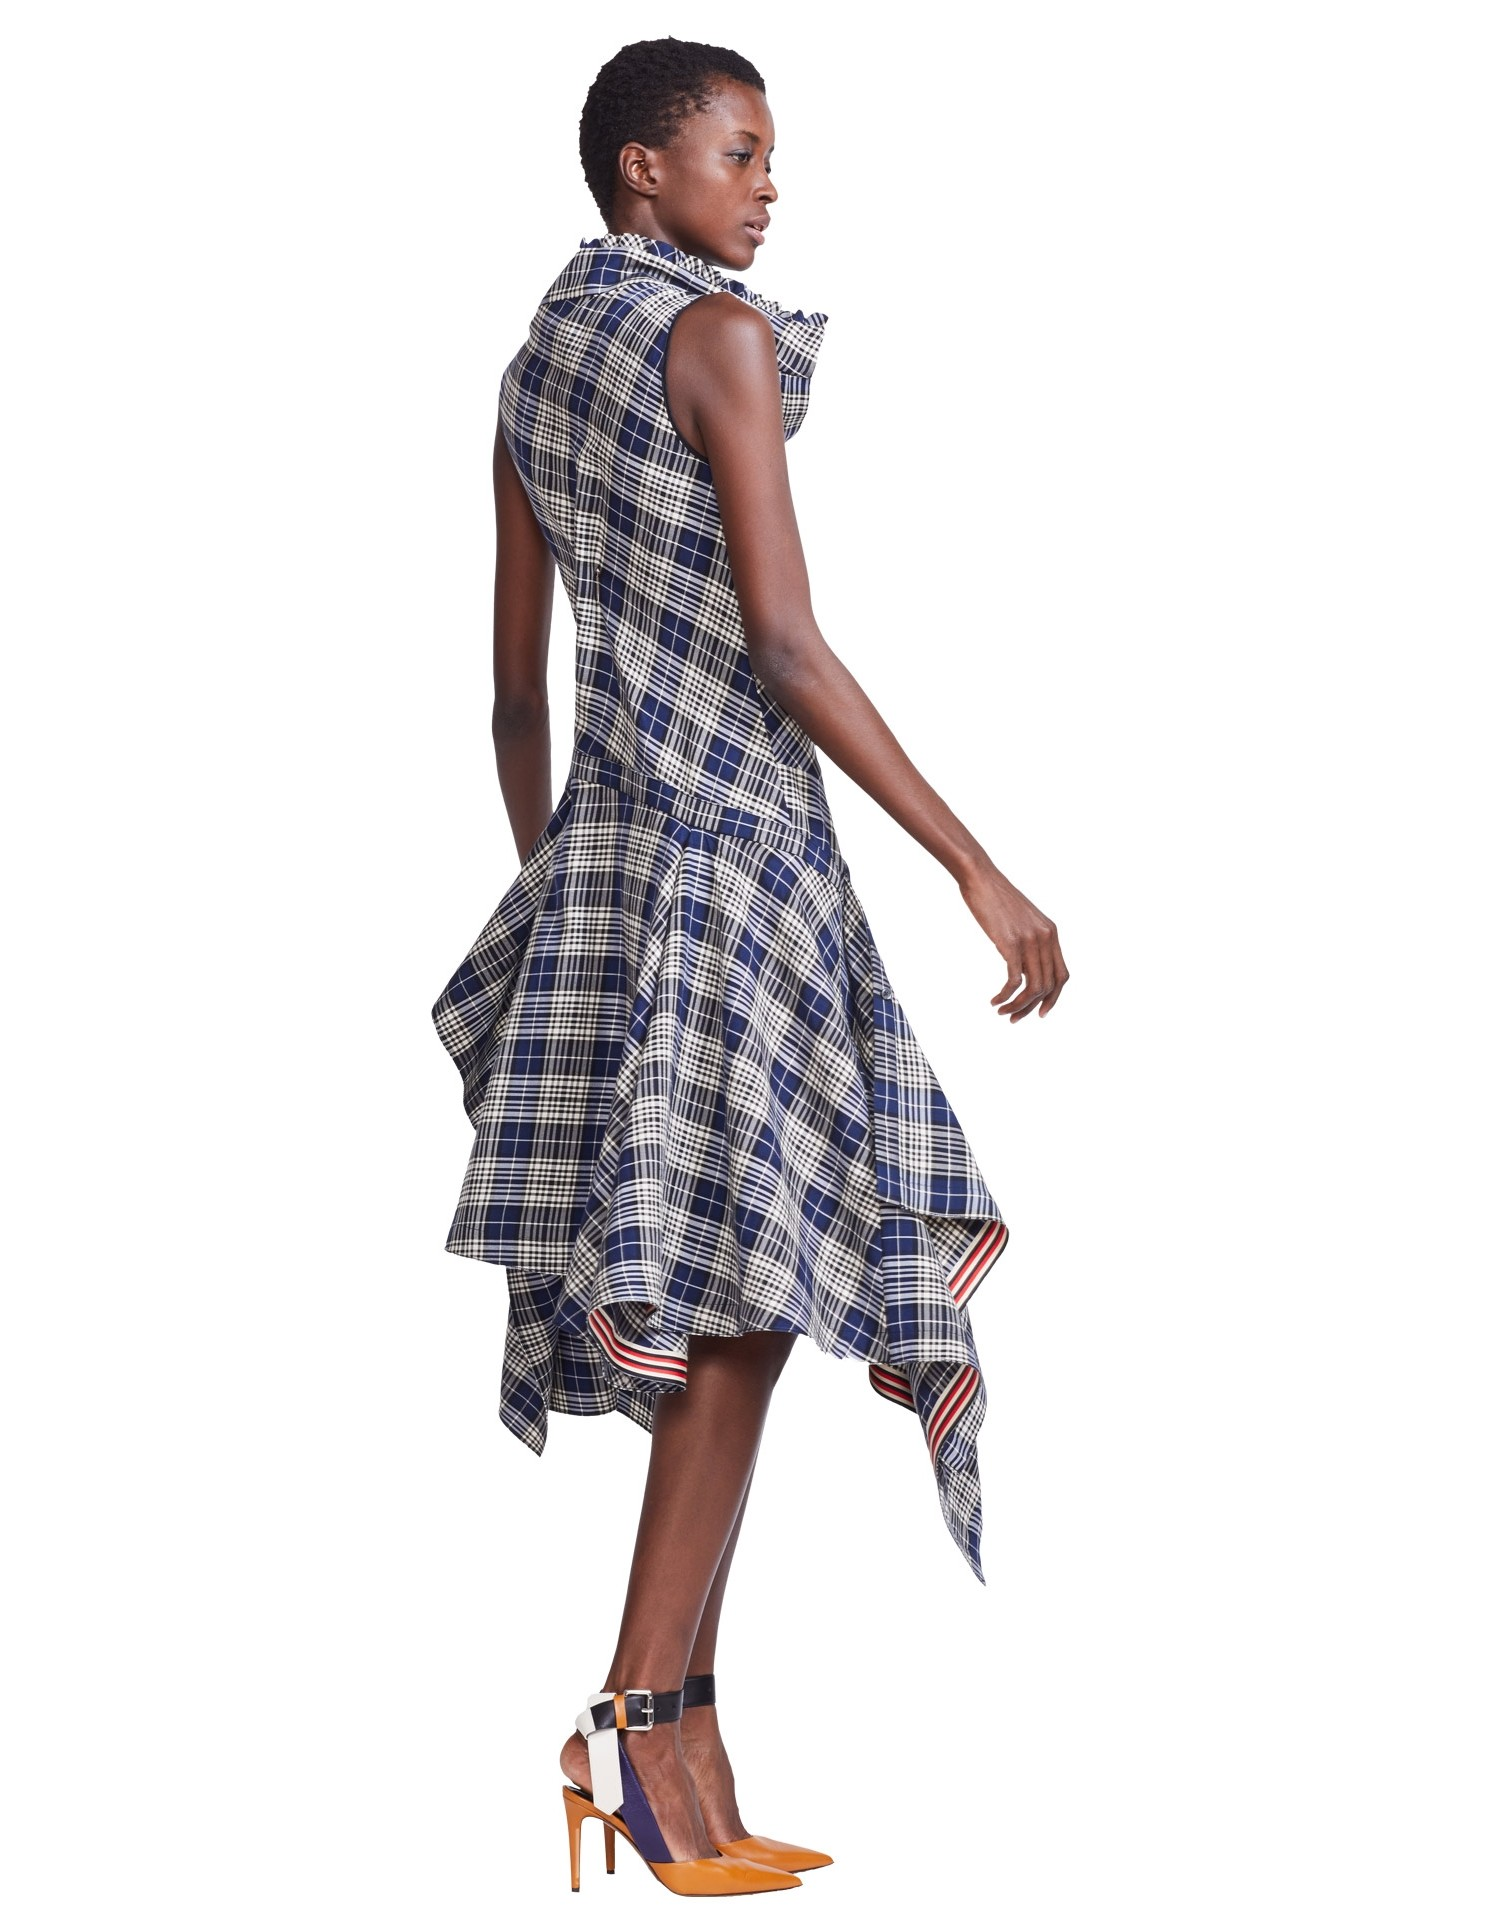 MONSE Plaid Cowl Neck Shirt Dress on Model Side View